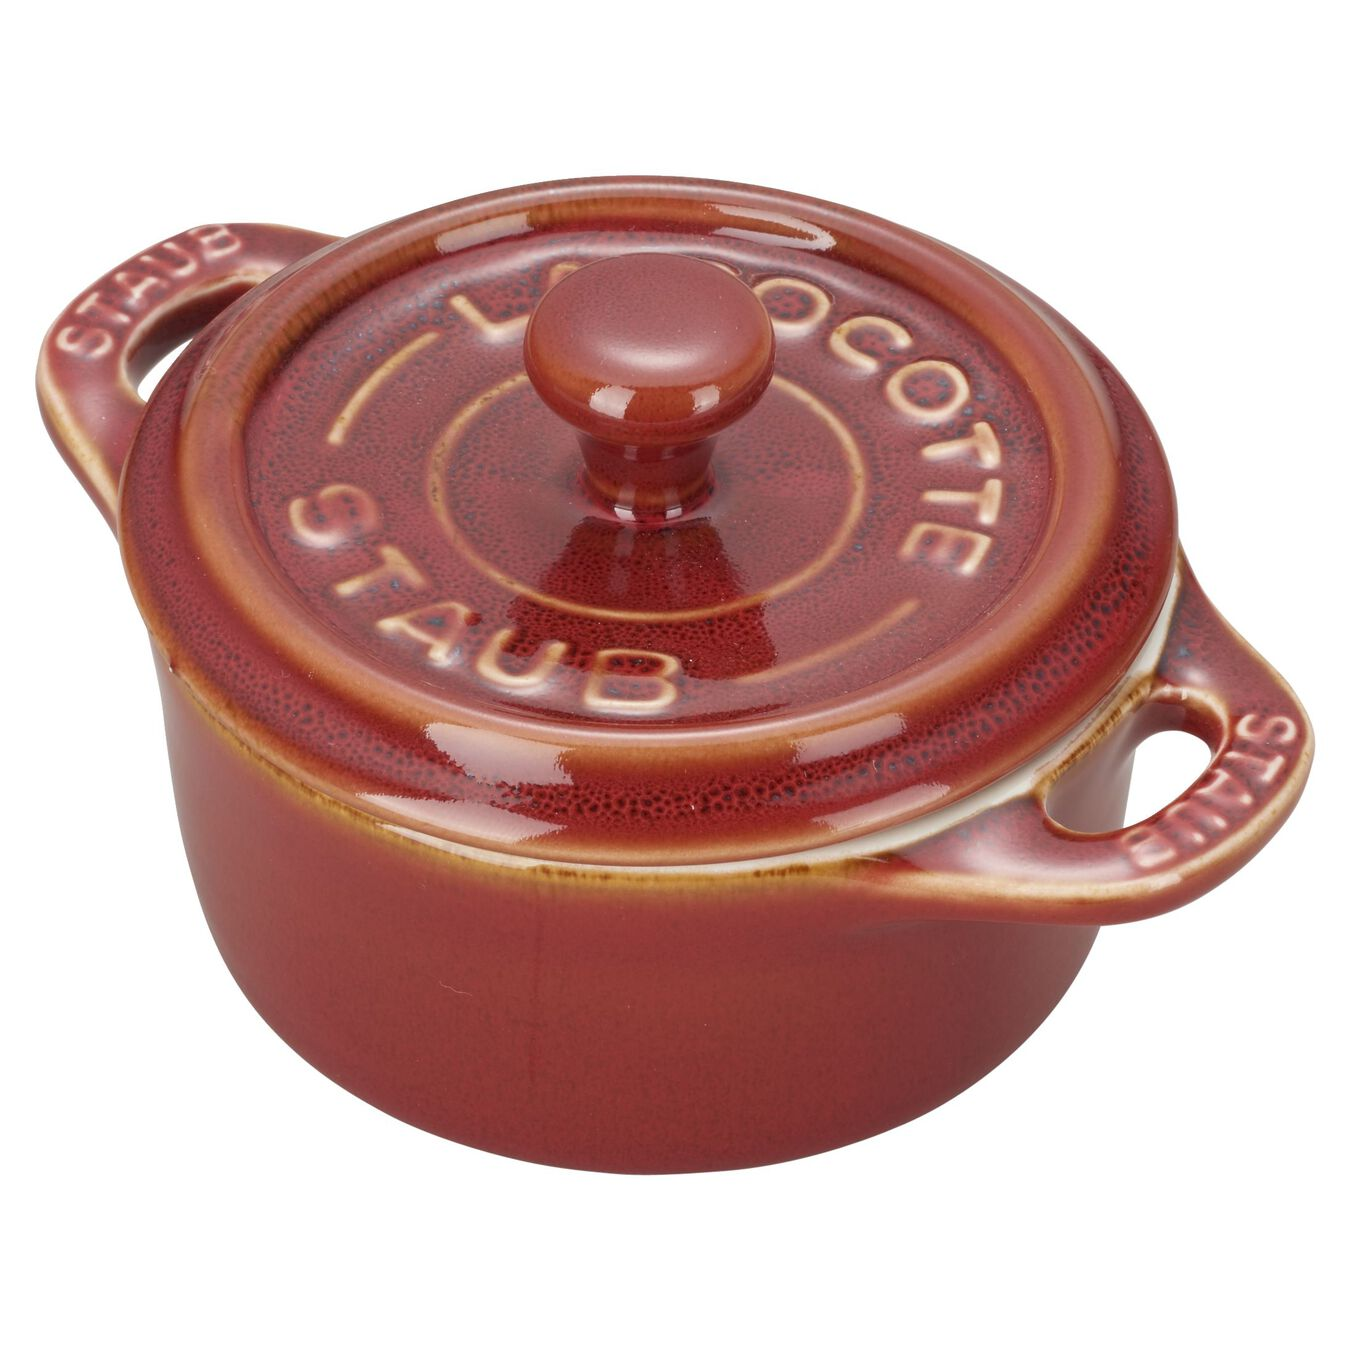 3-pc Mini Round Cocotte Set - Rustic Red,,large 6